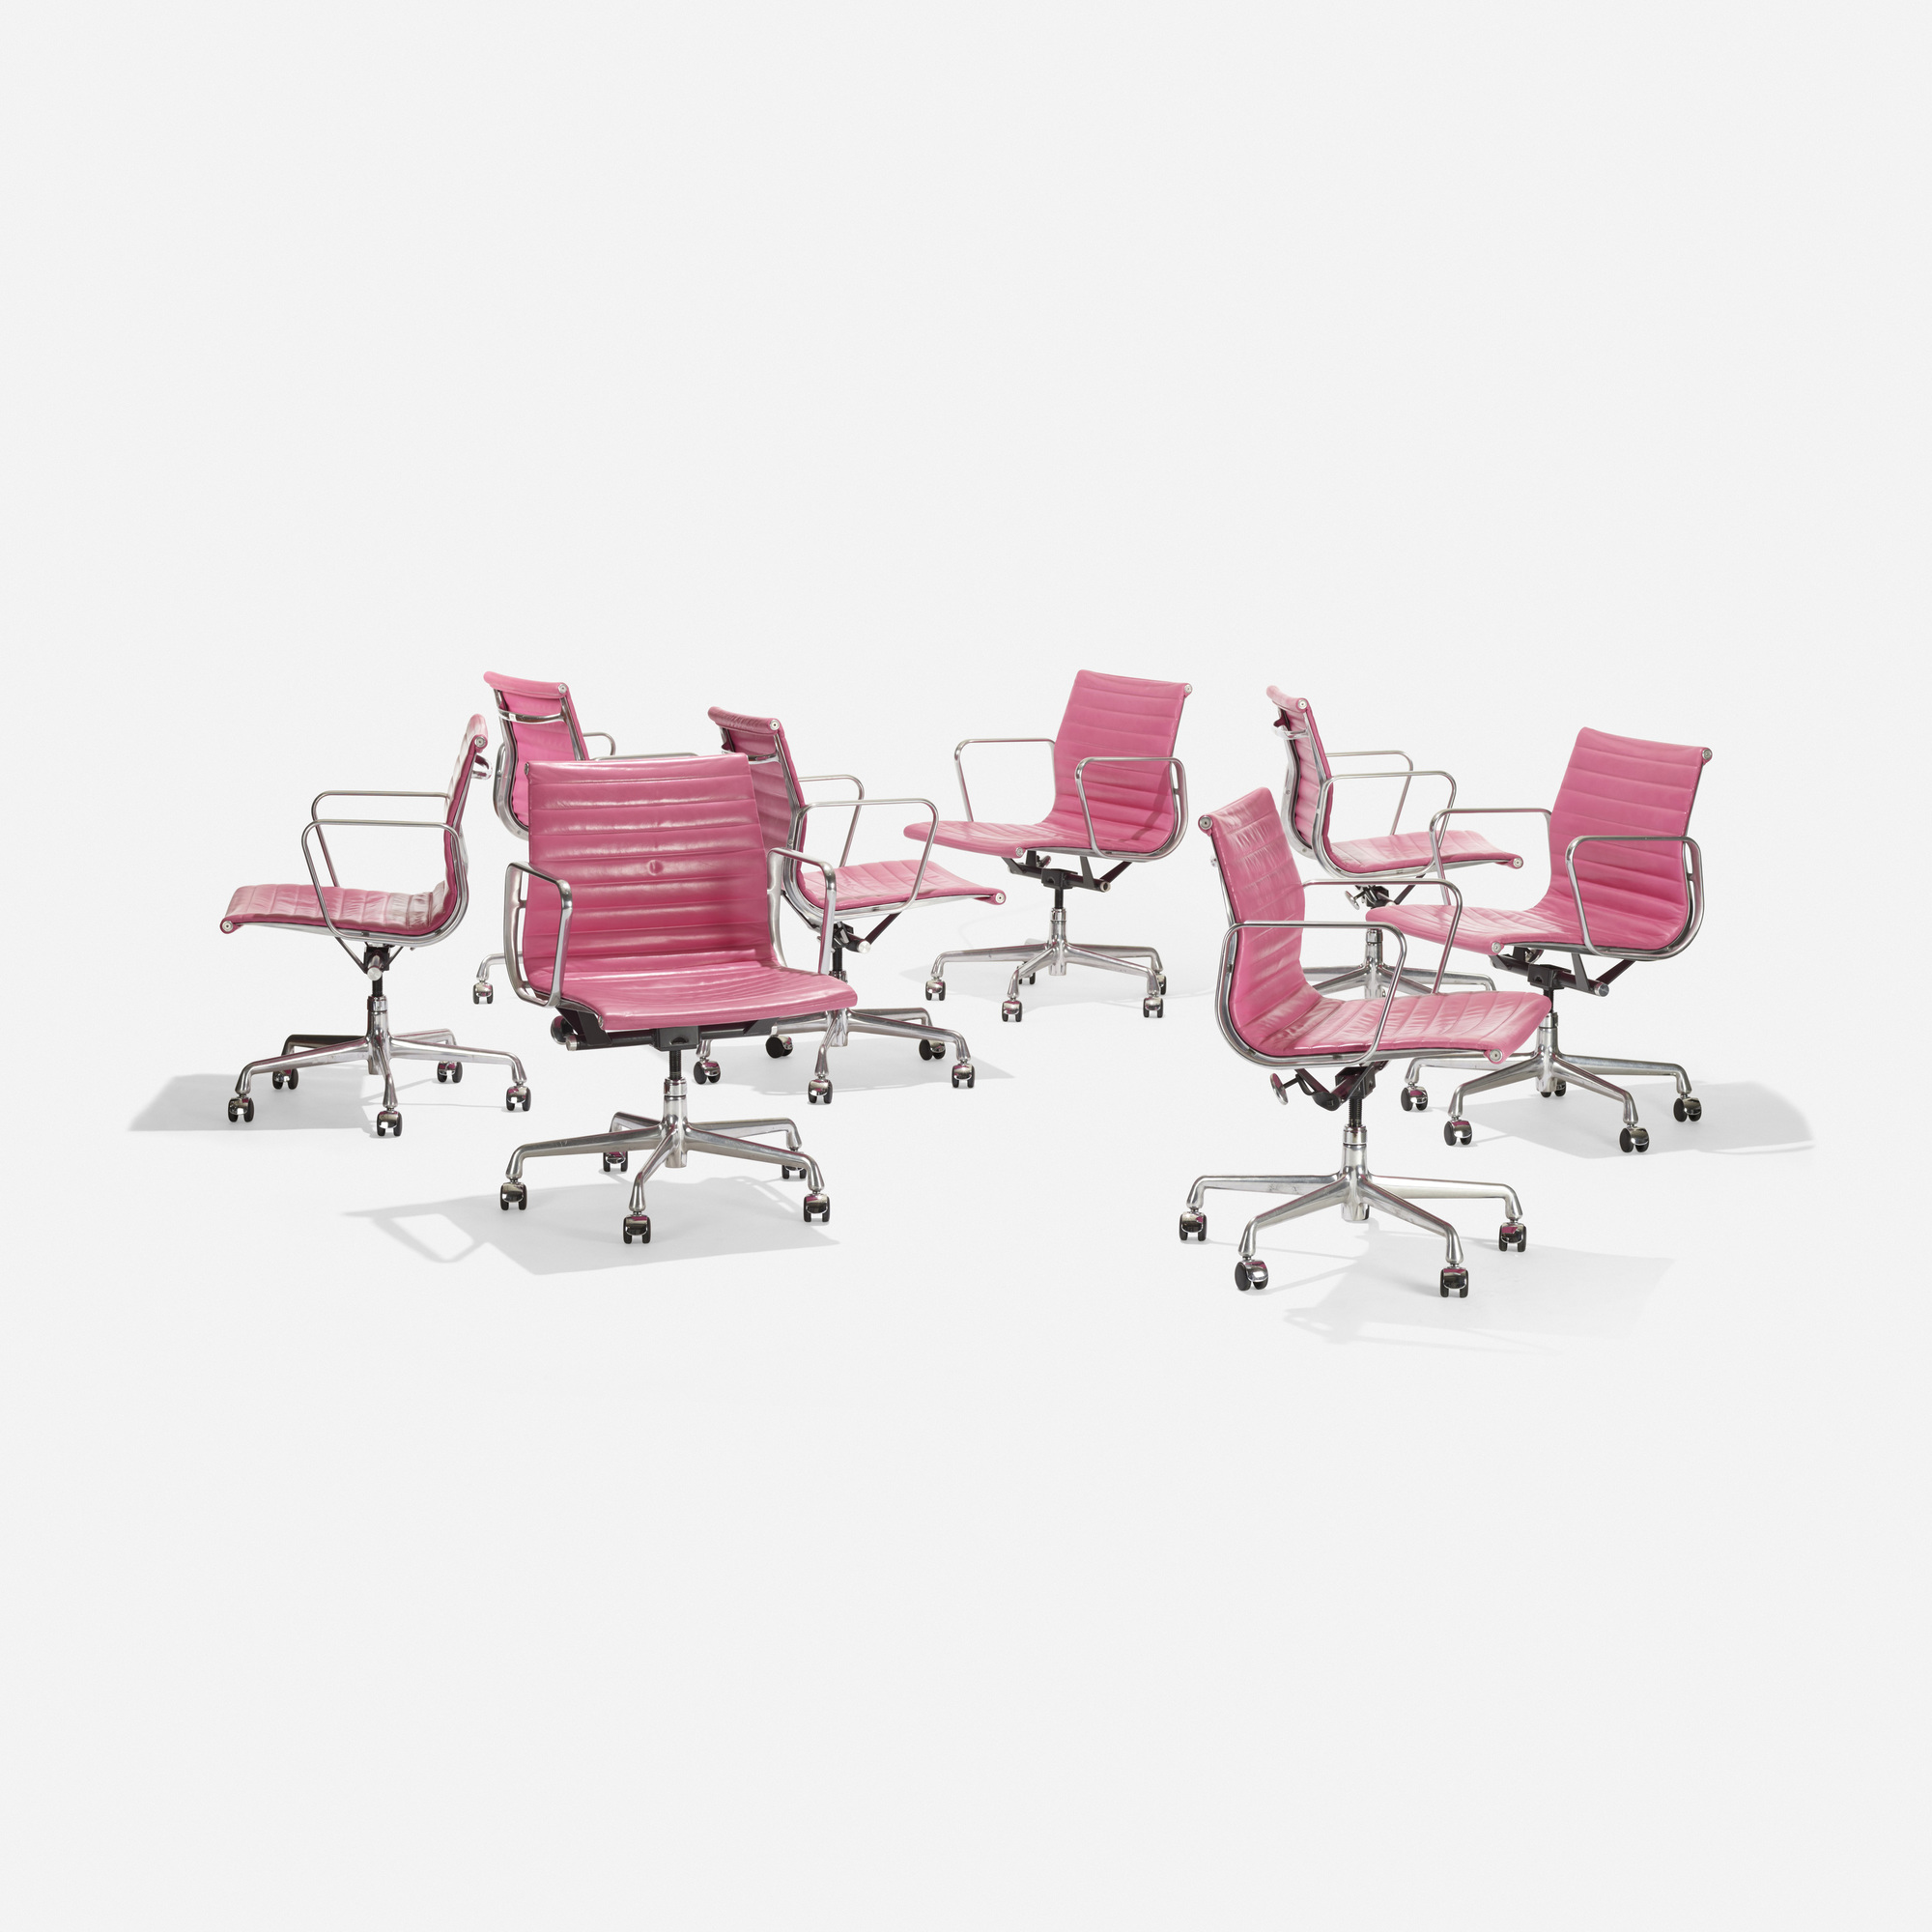 127: Charles and Ray Eames / Aluminum Group office chairs, set of eight (2 of 3)